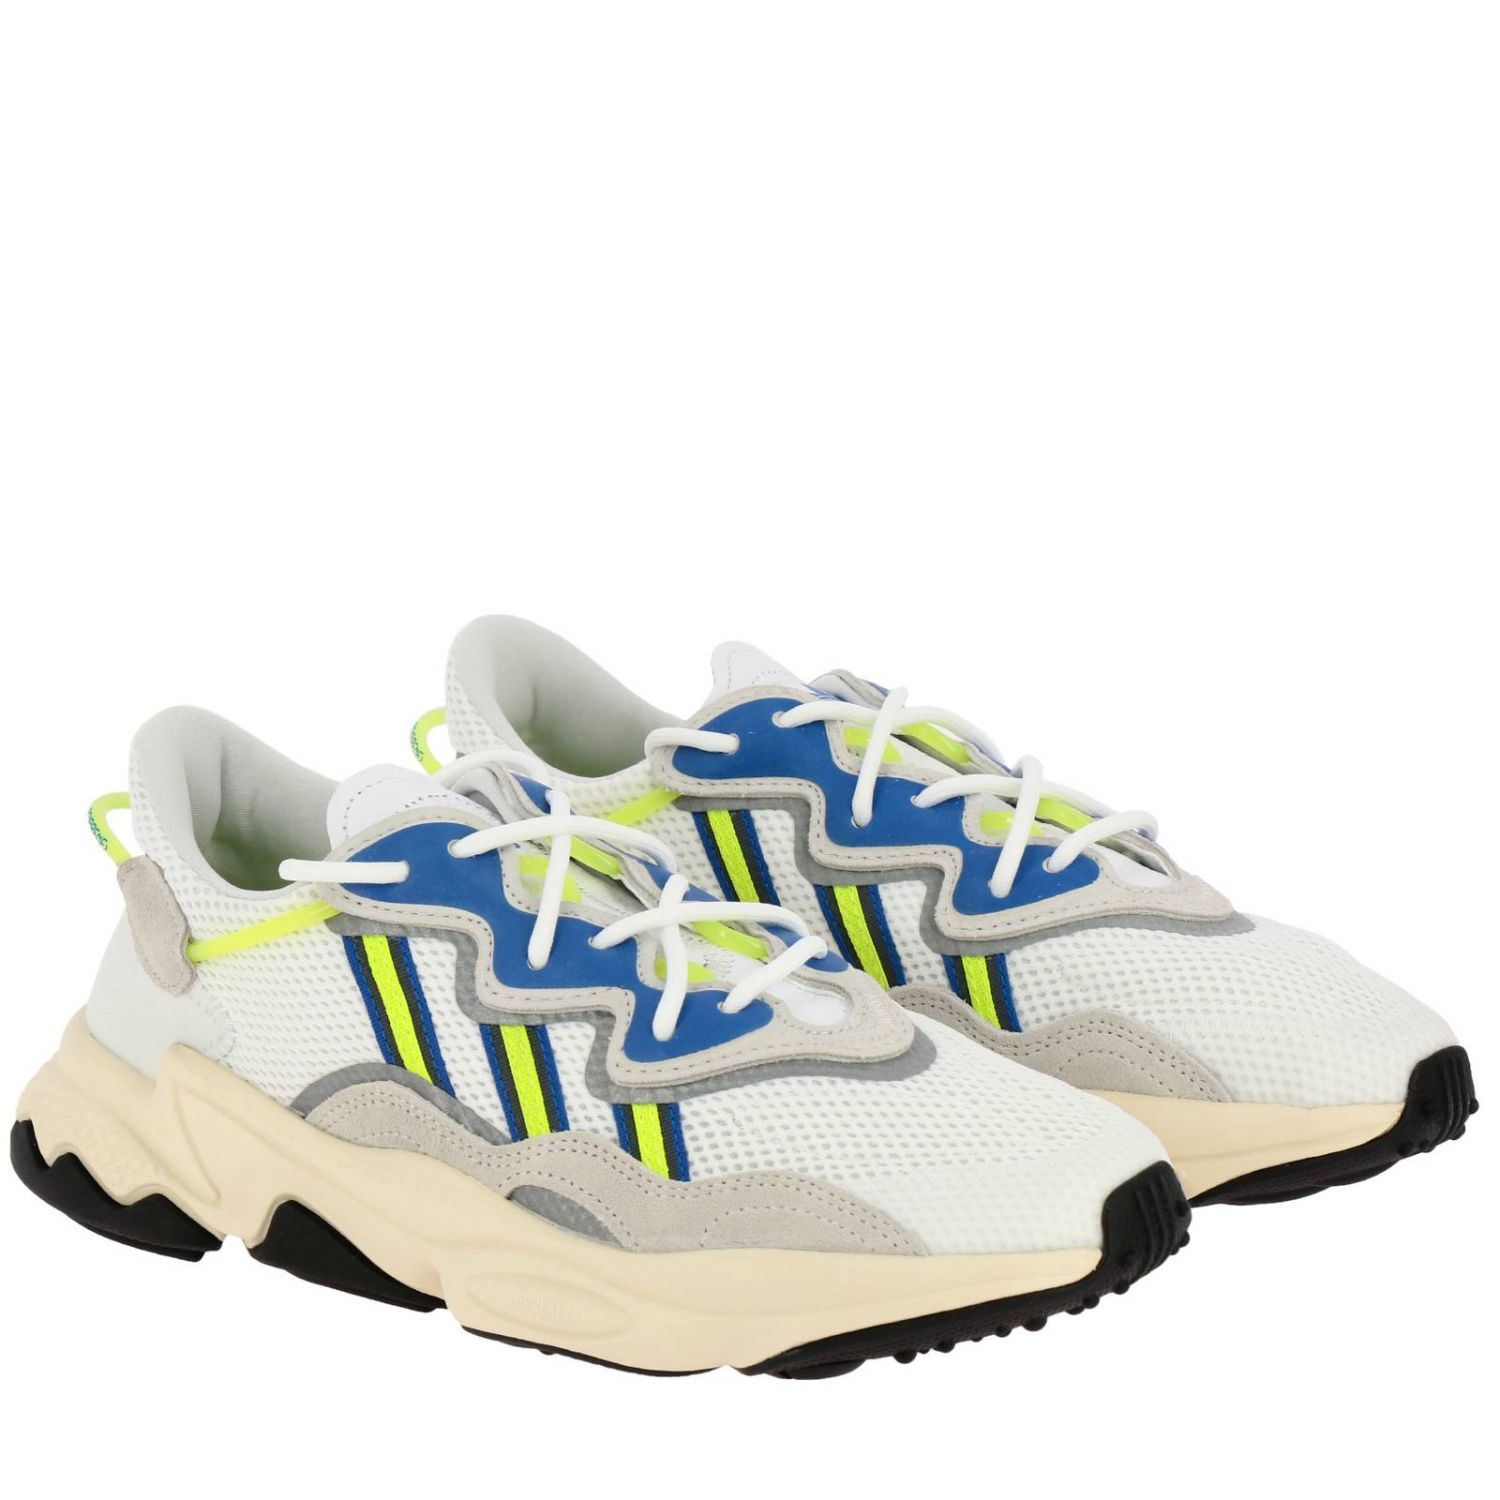 Trainers Adidas Originals: Sneakers Ozweego Adidas Originals in suede and fluo rubber white 2